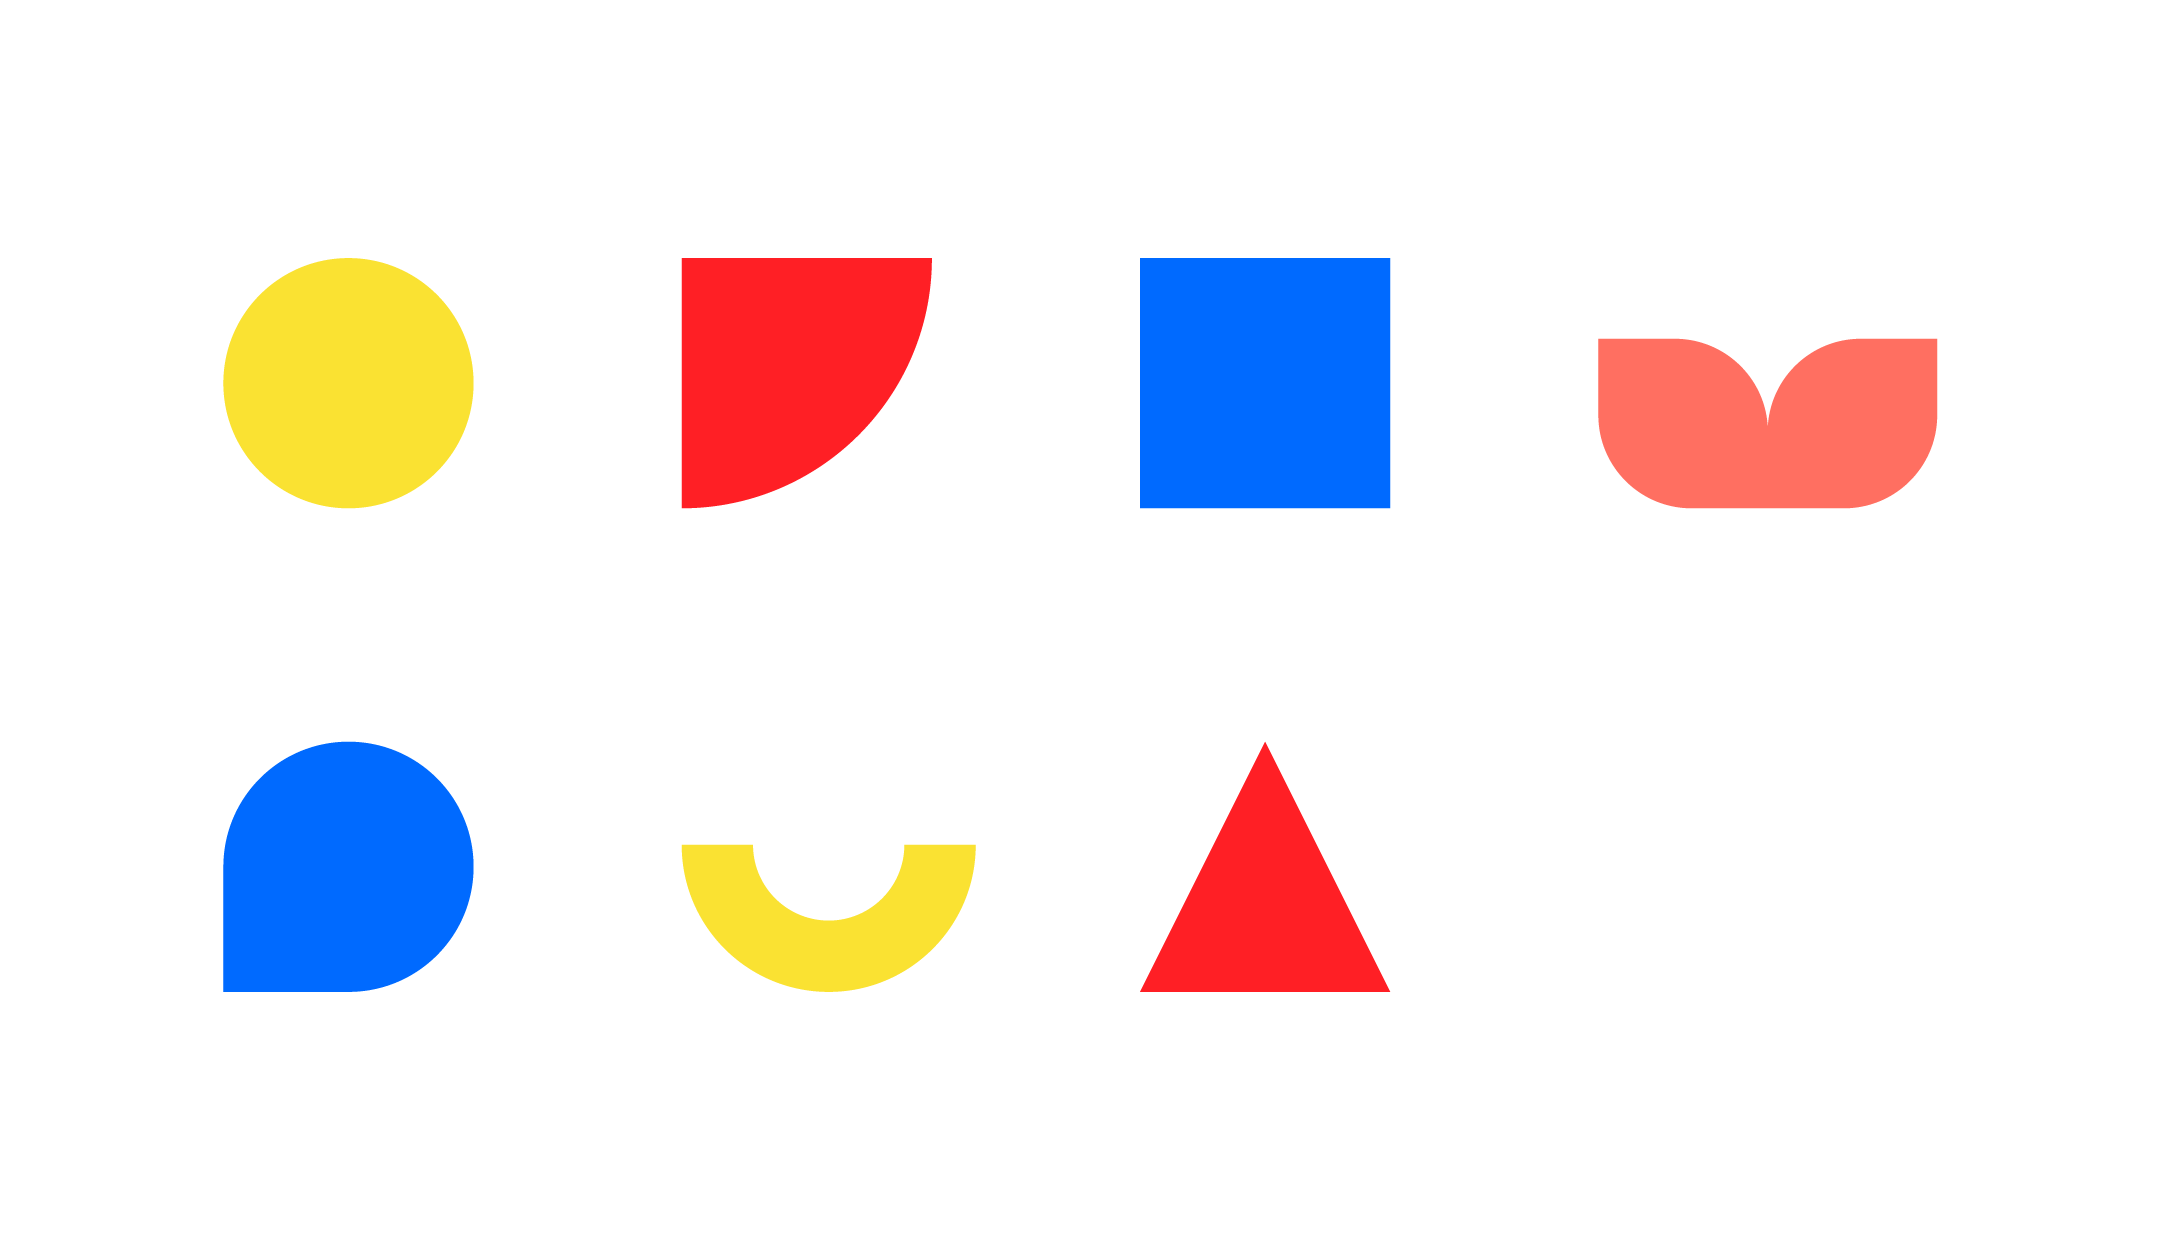 Shapes-01-png